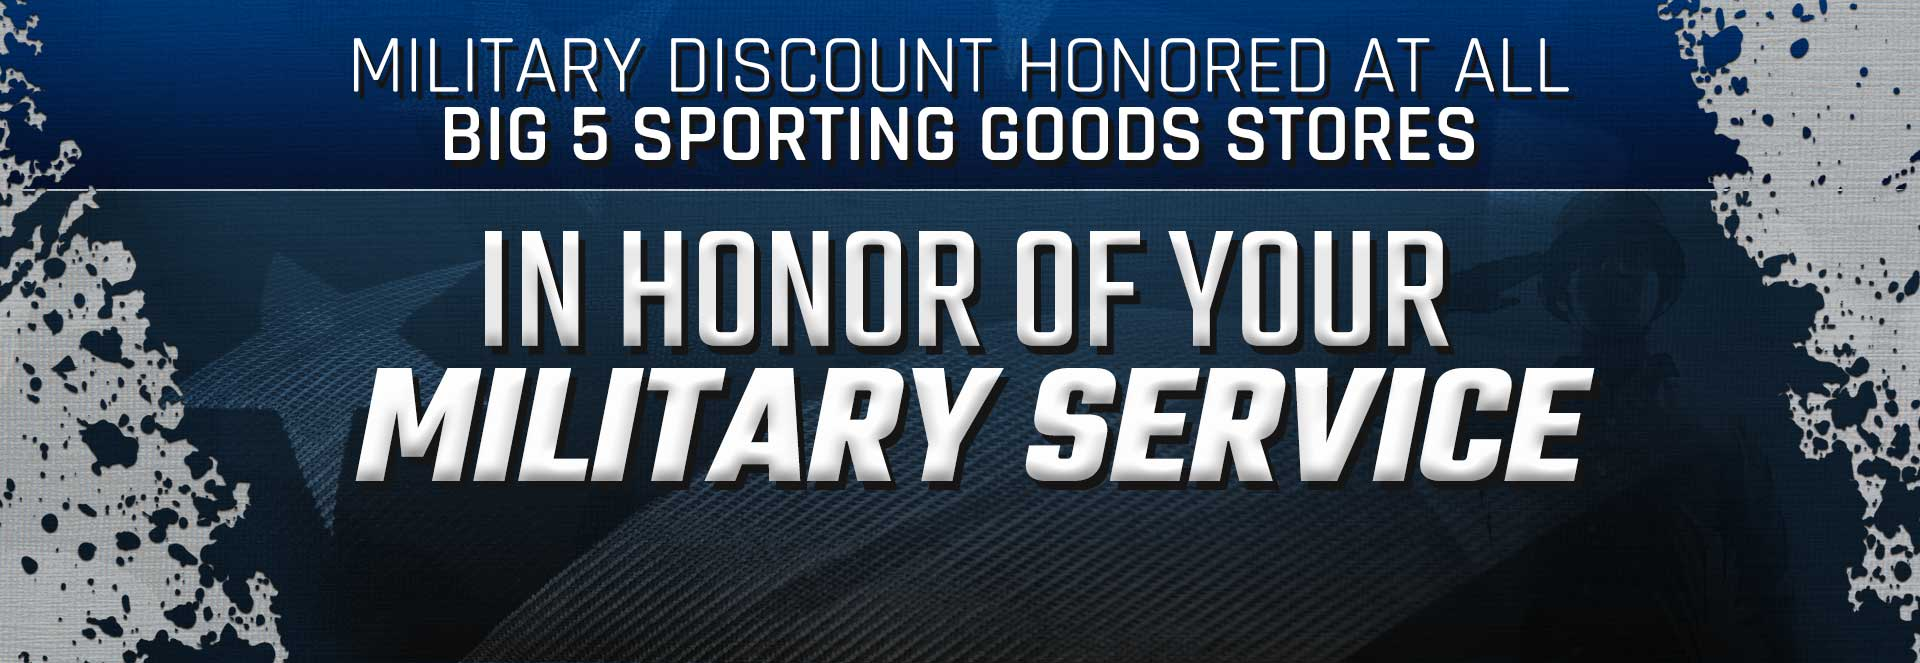 Militsary Discount - Discount offer for members of military